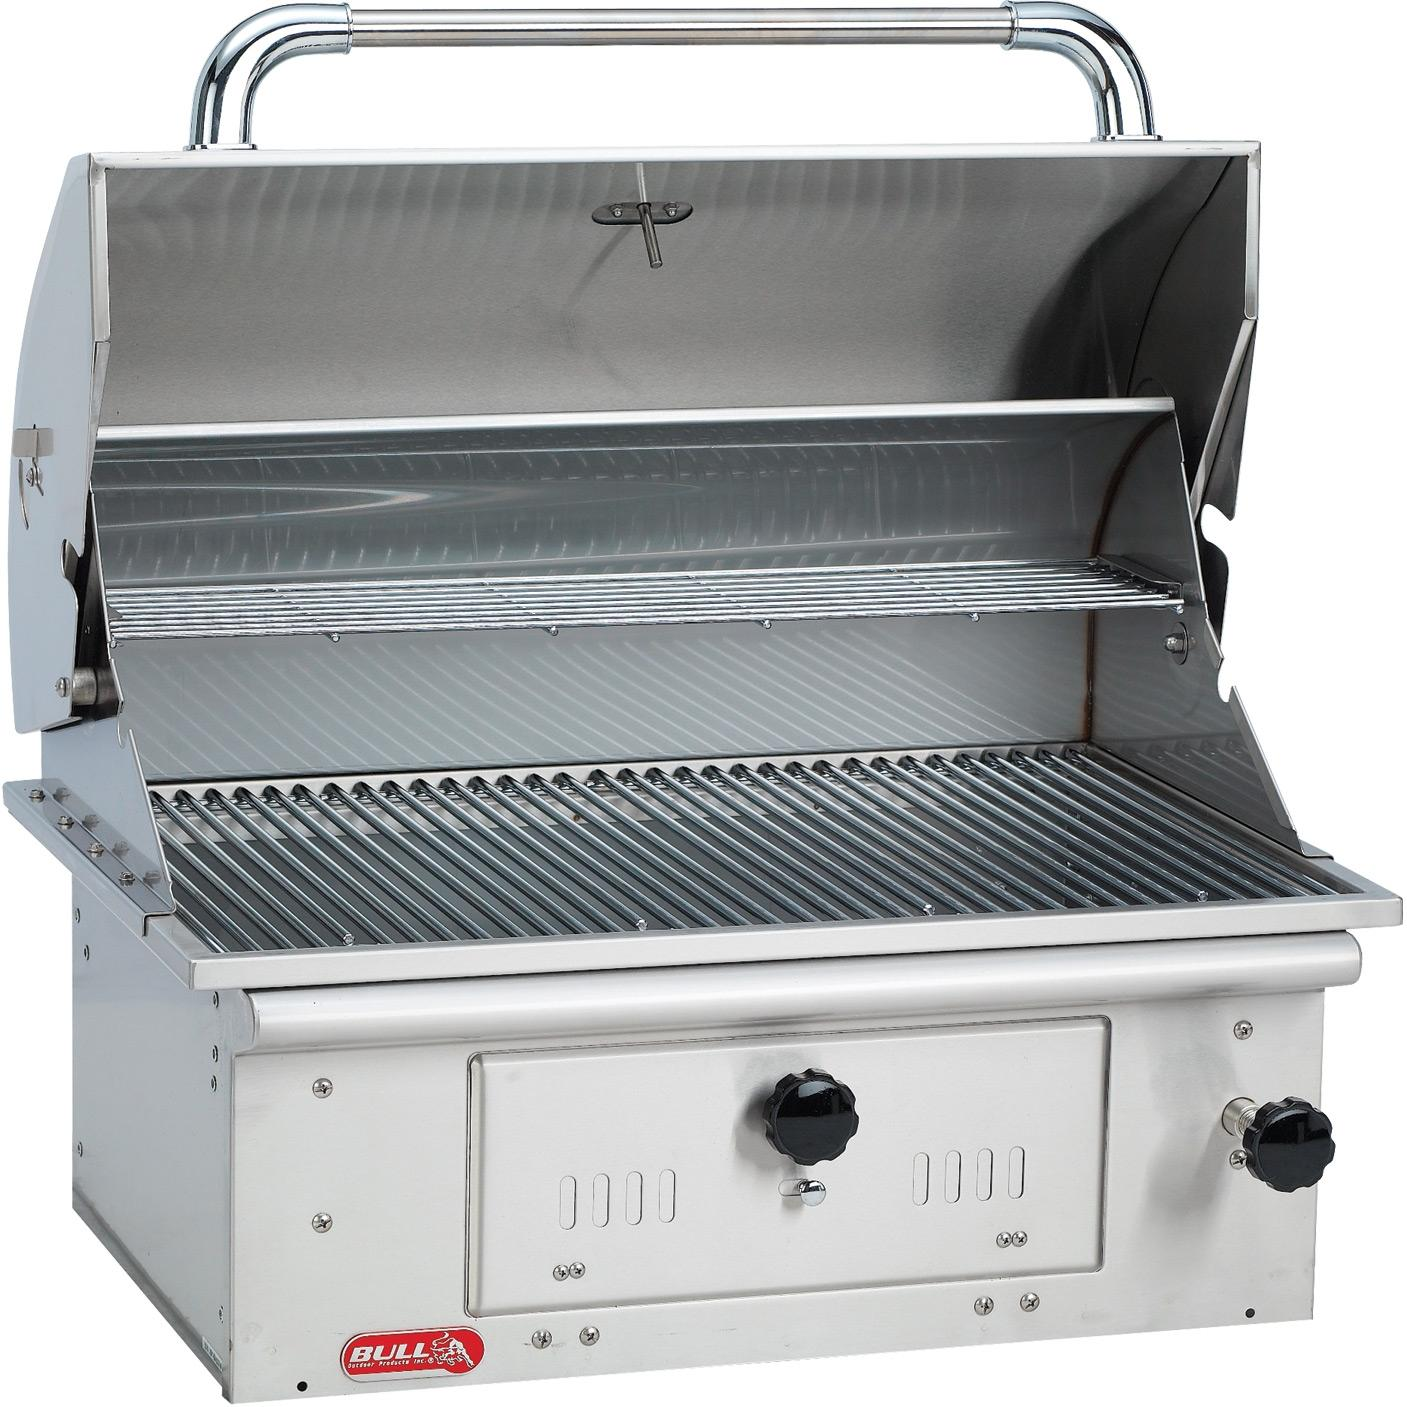 Bull Bison 30-Inch Stainless Steel Built-In Charcoal Grill